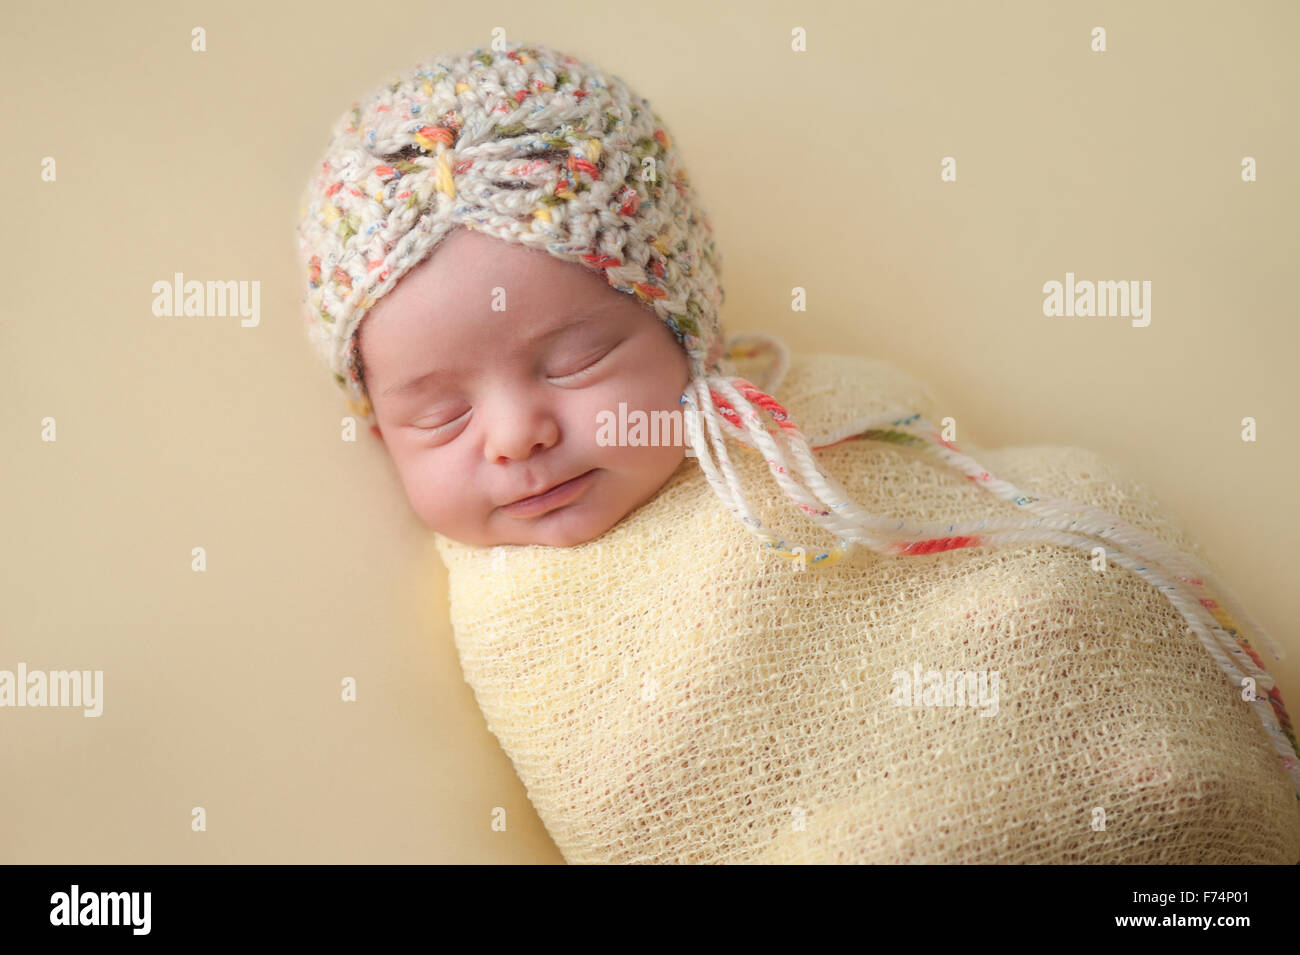 A portrait of a beautiful, two week old, newborn baby girl wearing a  crocheted bonnet. She is smiling and sleeping on yellow col 03aa80c915d